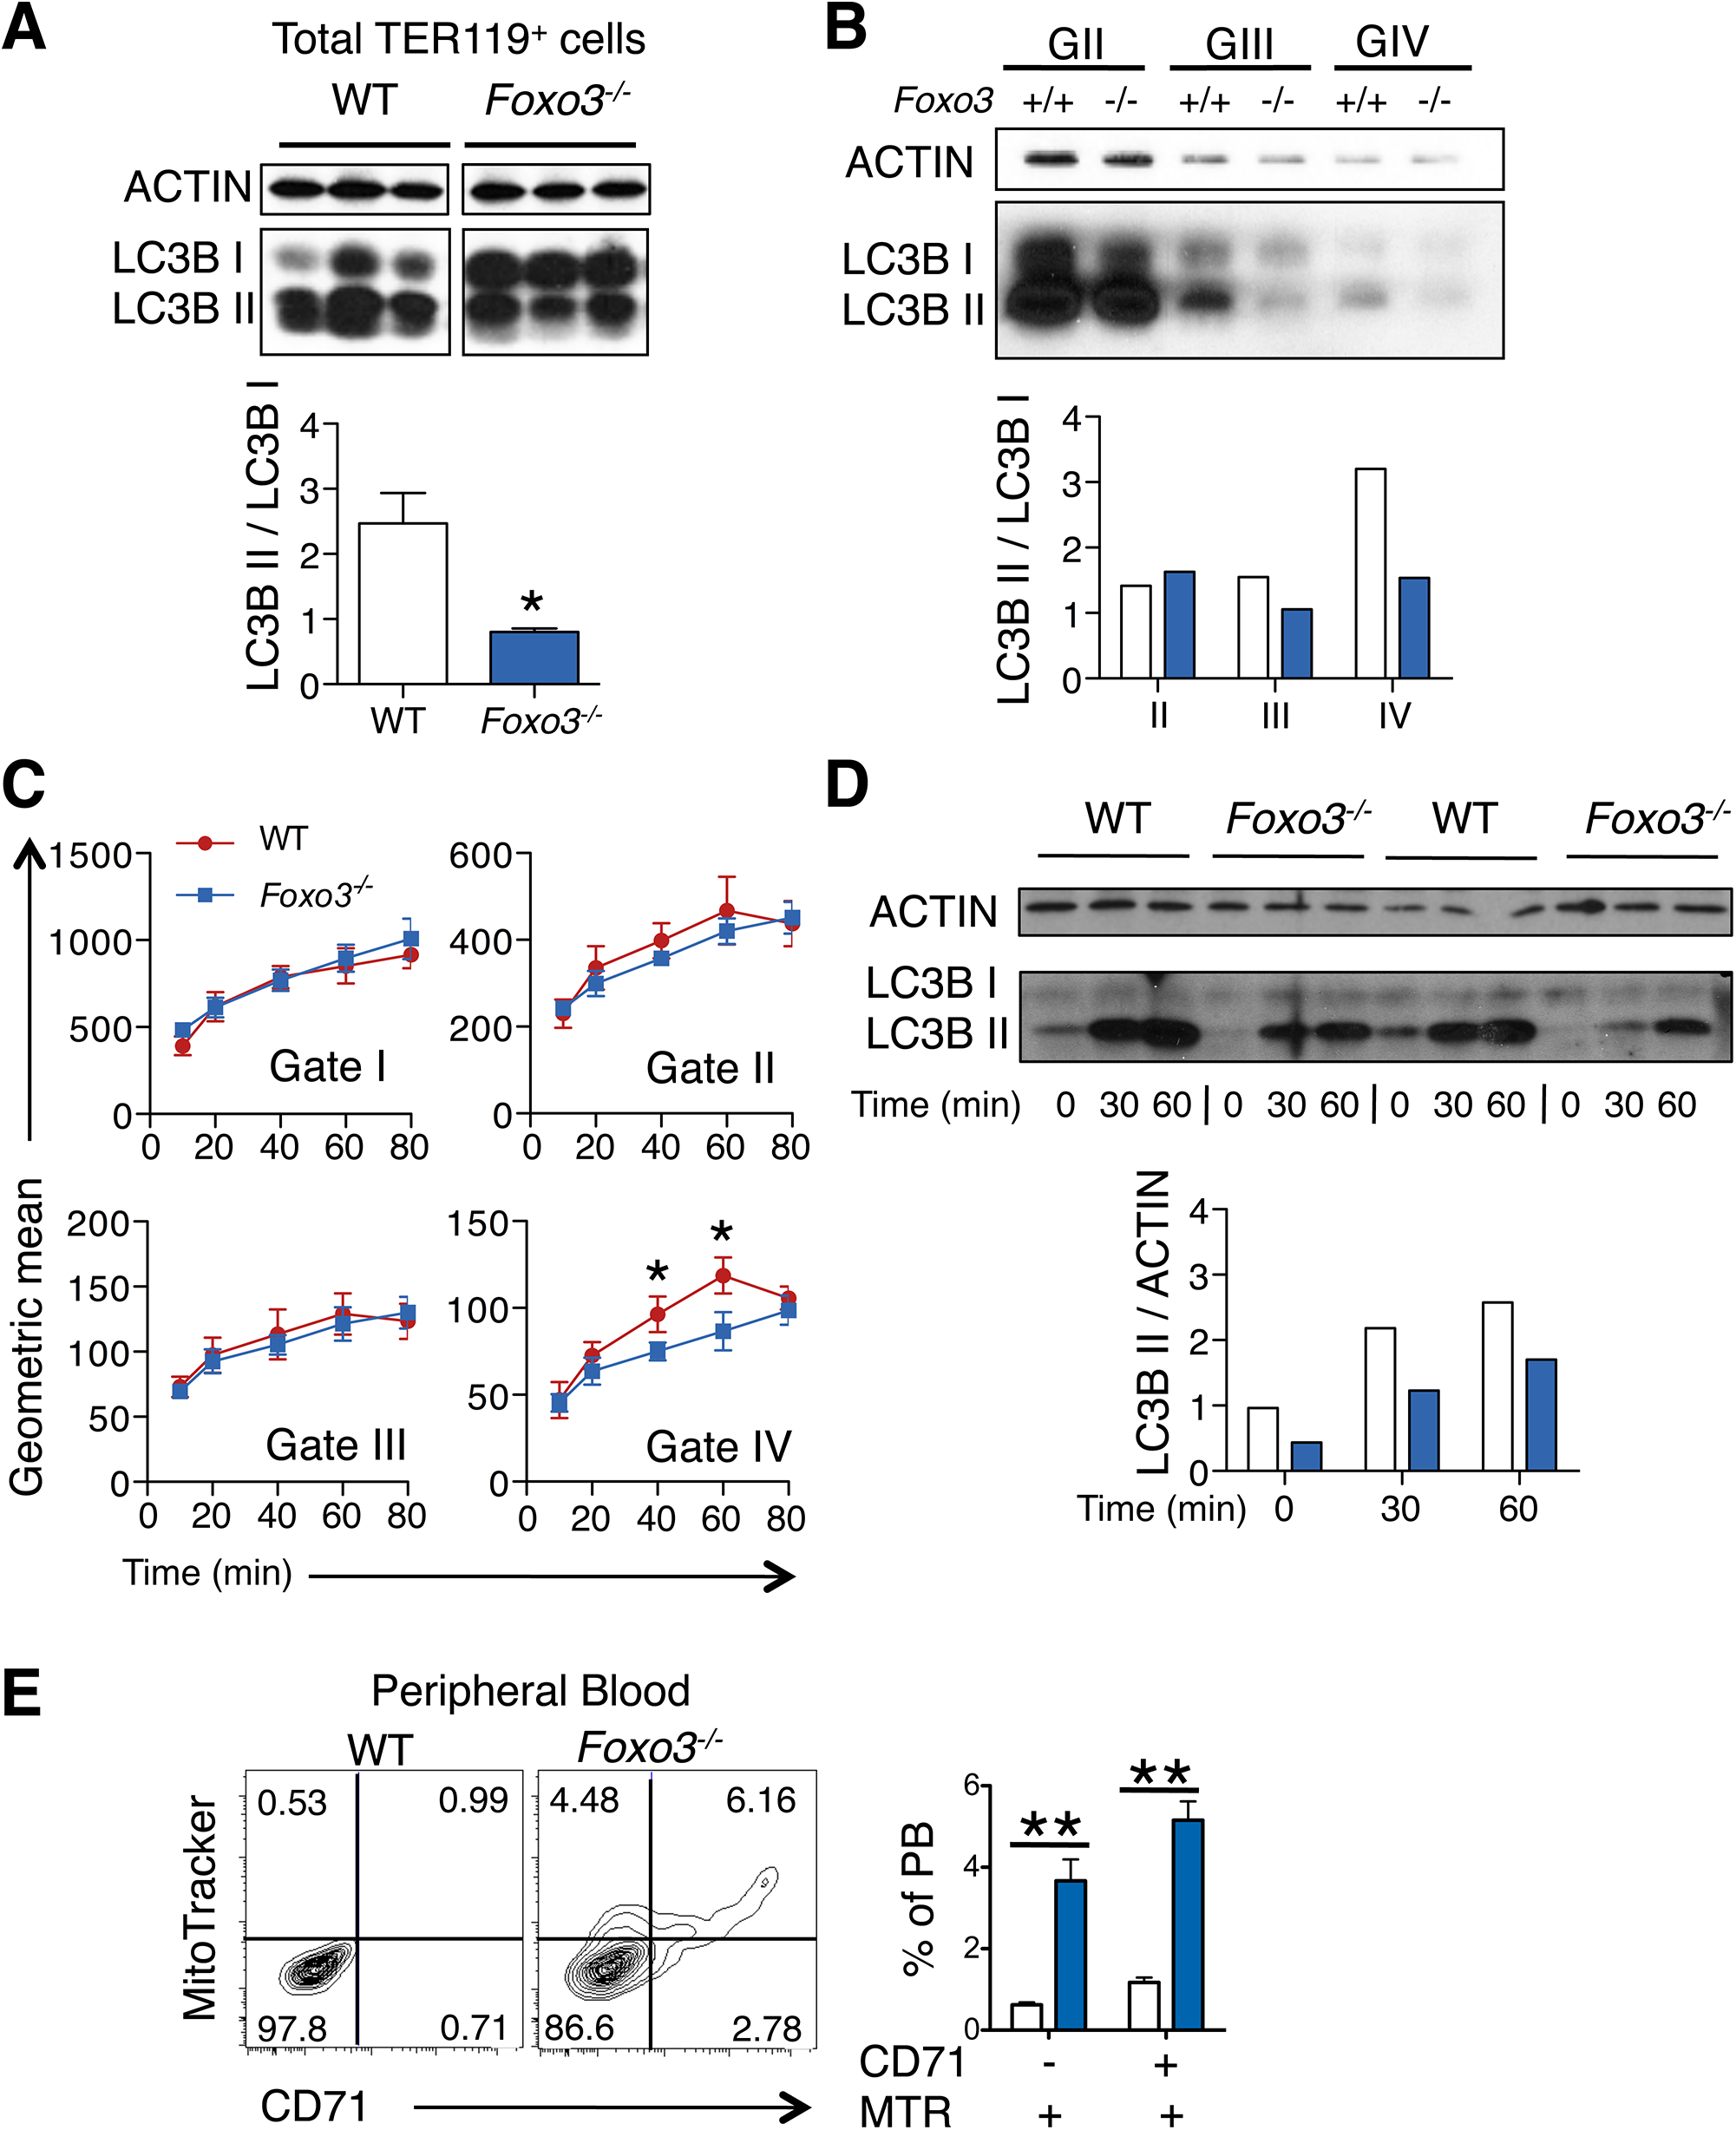 Autophagy and mitochondrial removal are impaired in <i>Foxo3</i><sup><i>-/-</i></sup> erythroblasts